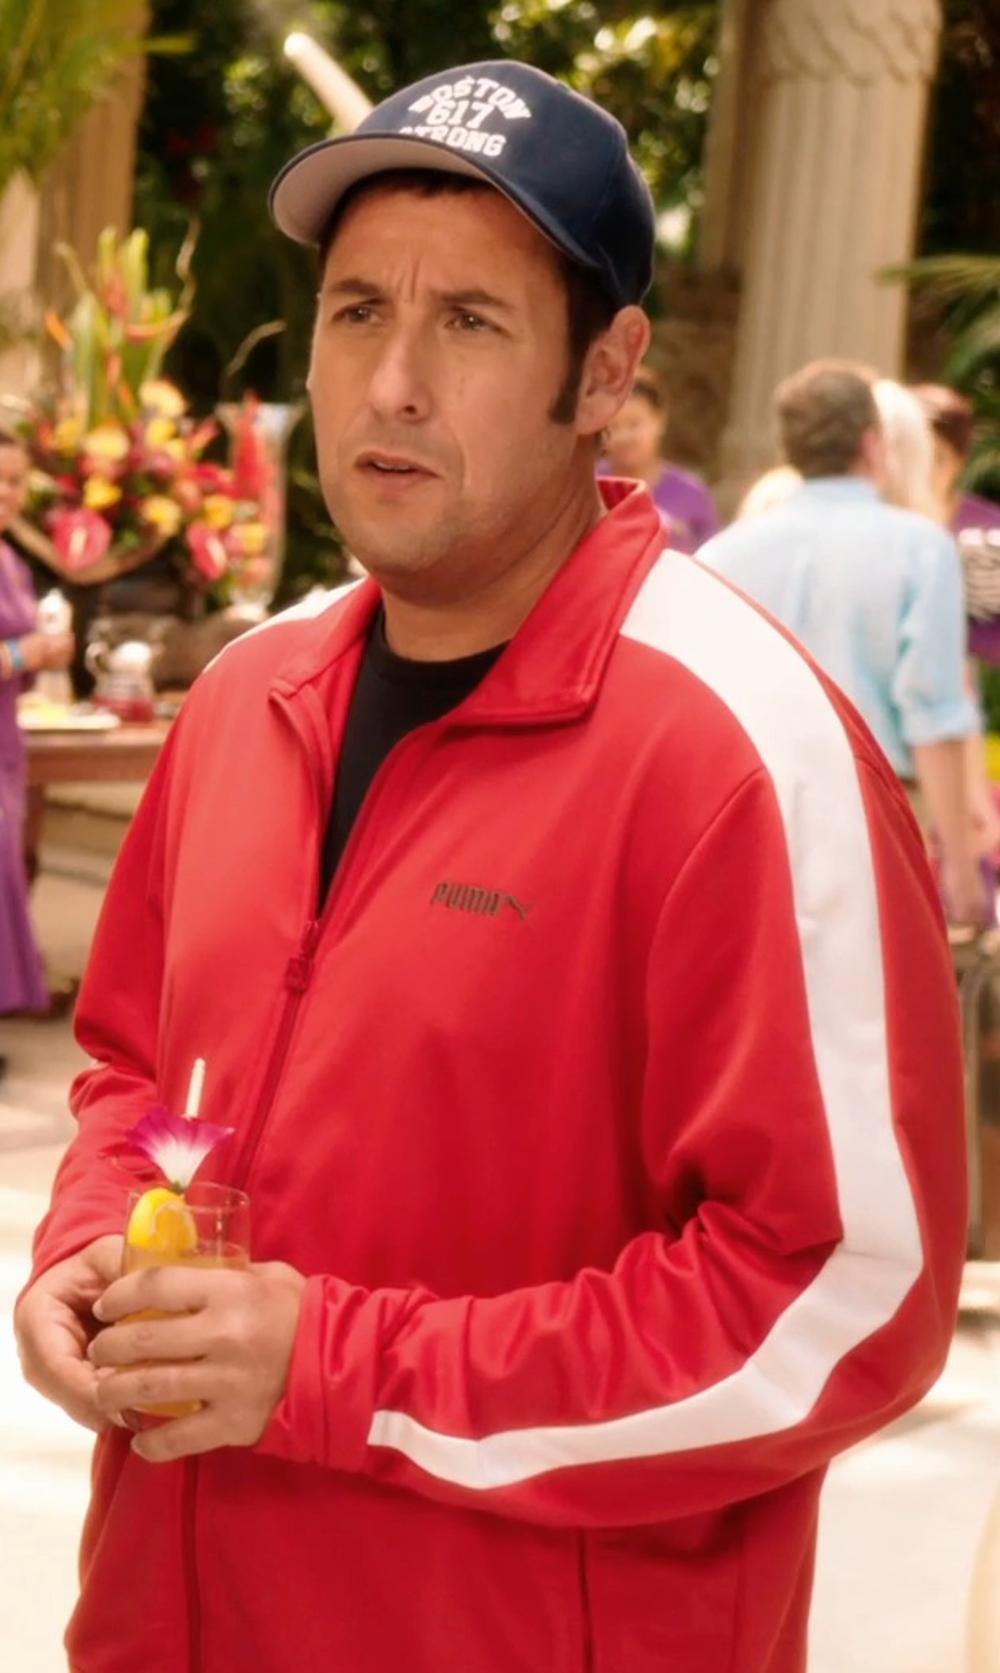 Adam Sandler with PUMA Men's Heroes T7 Track Jacket in Blended